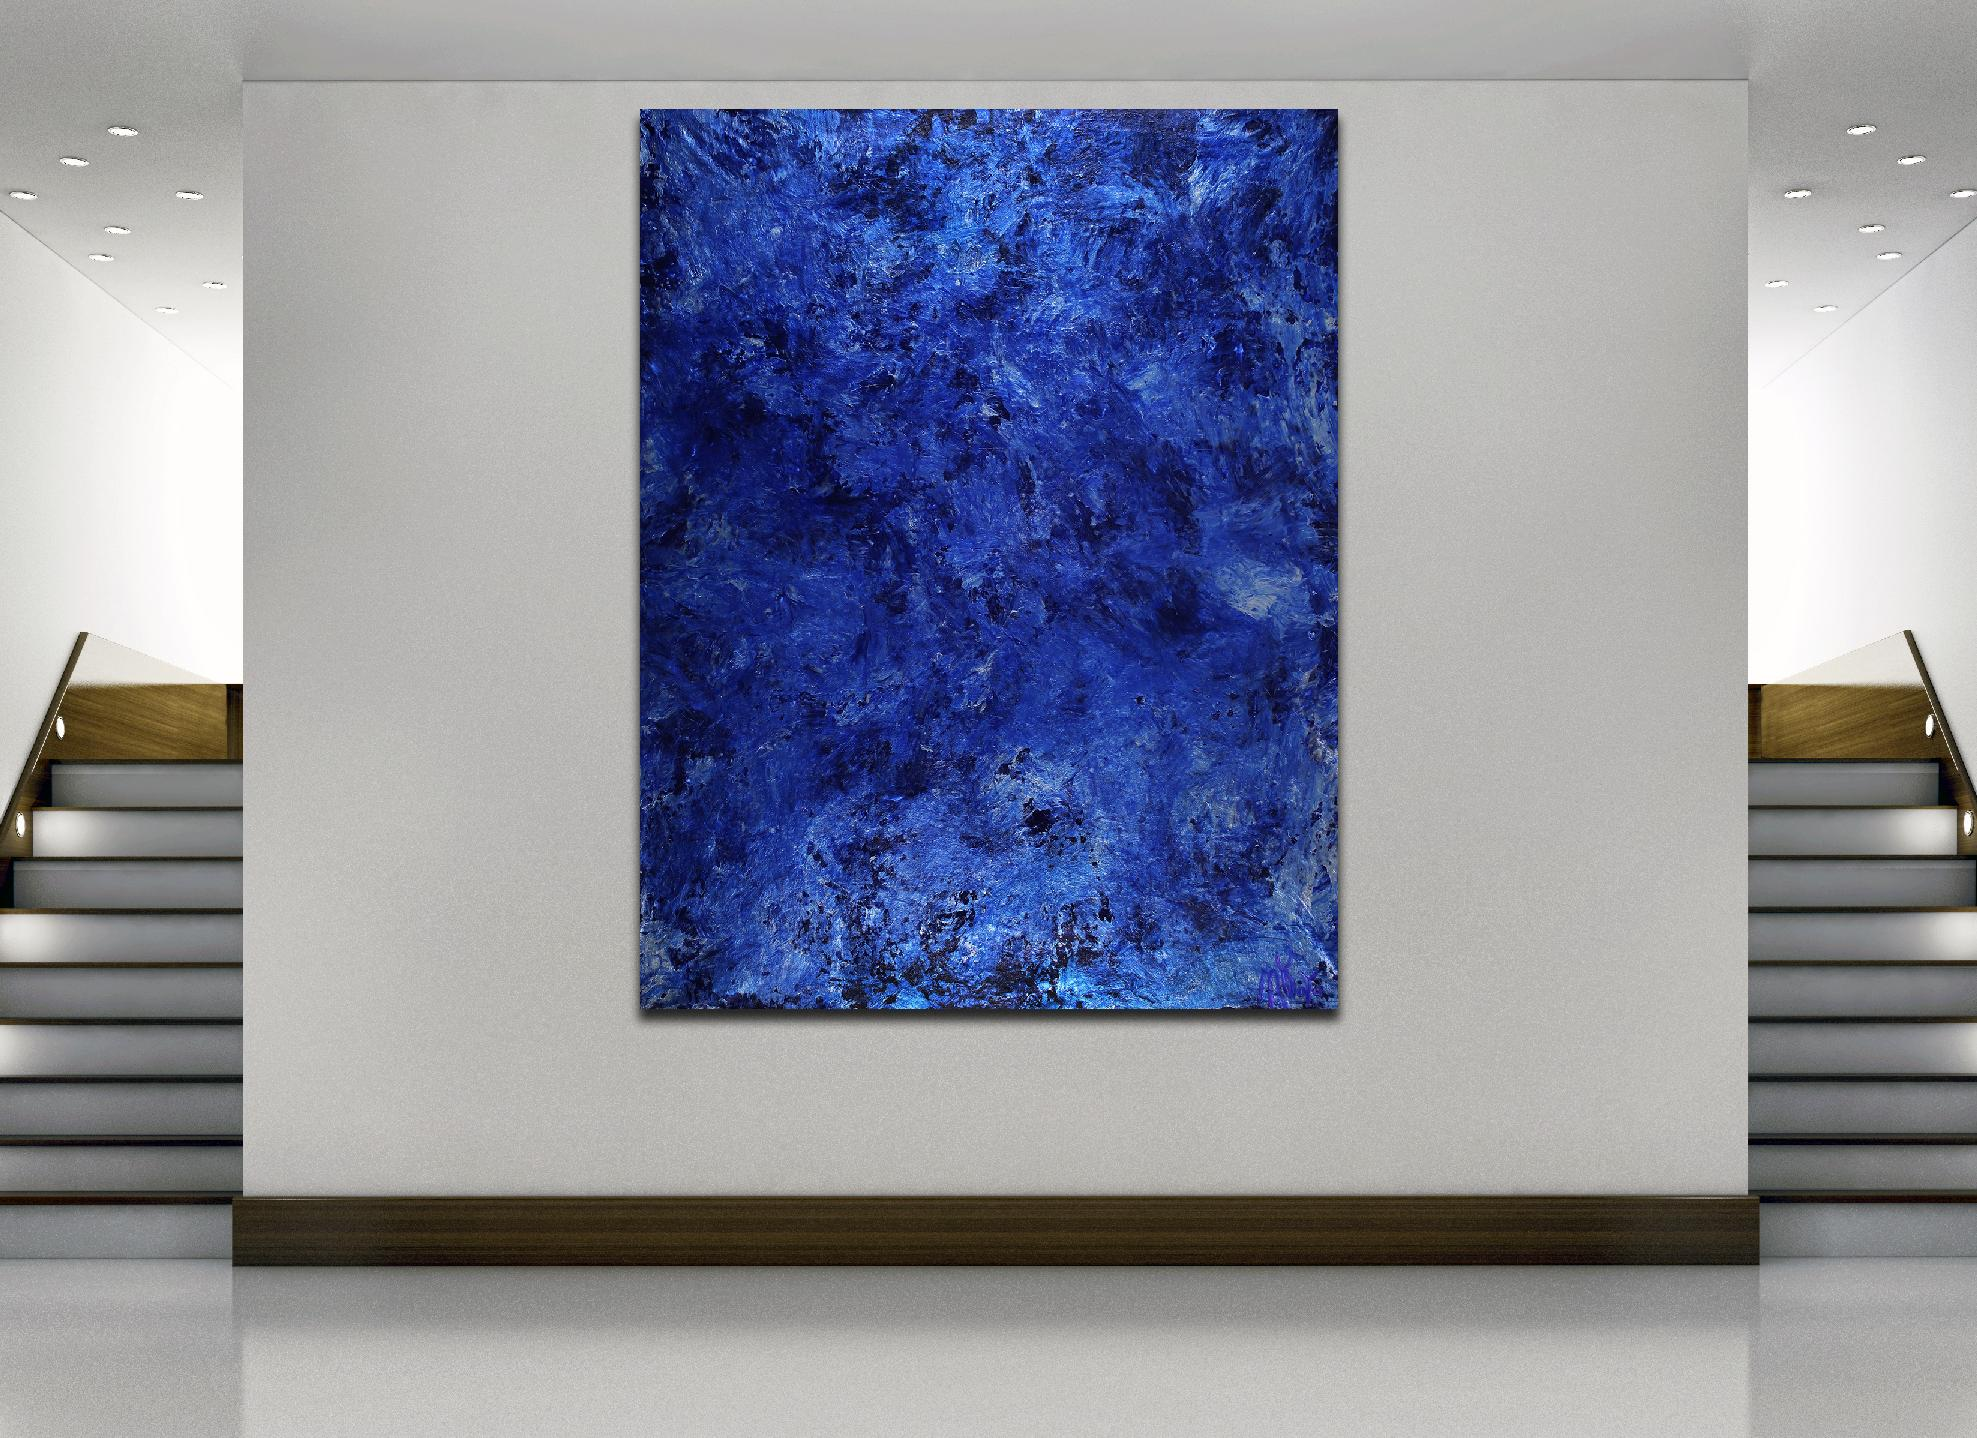 Room View - Rotating out in space | Large minimalist painting (2020) by Nestor Toro